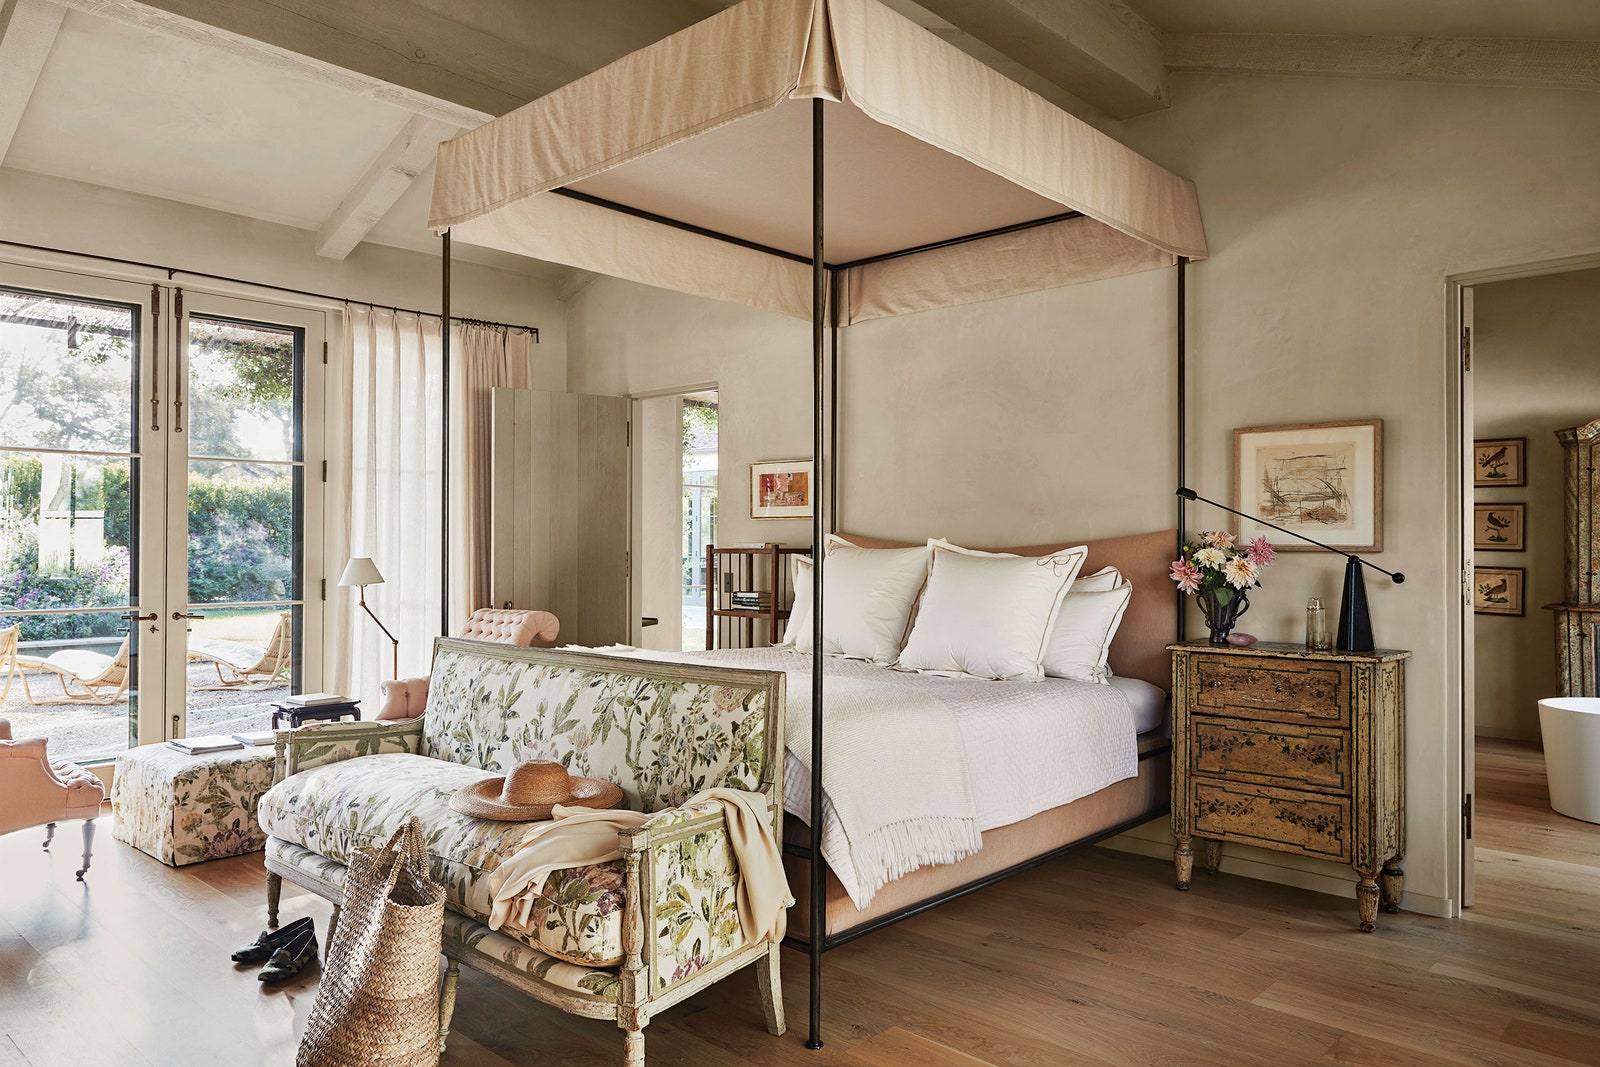 Suzanne Rheinstein's Montecito Retreat in AD